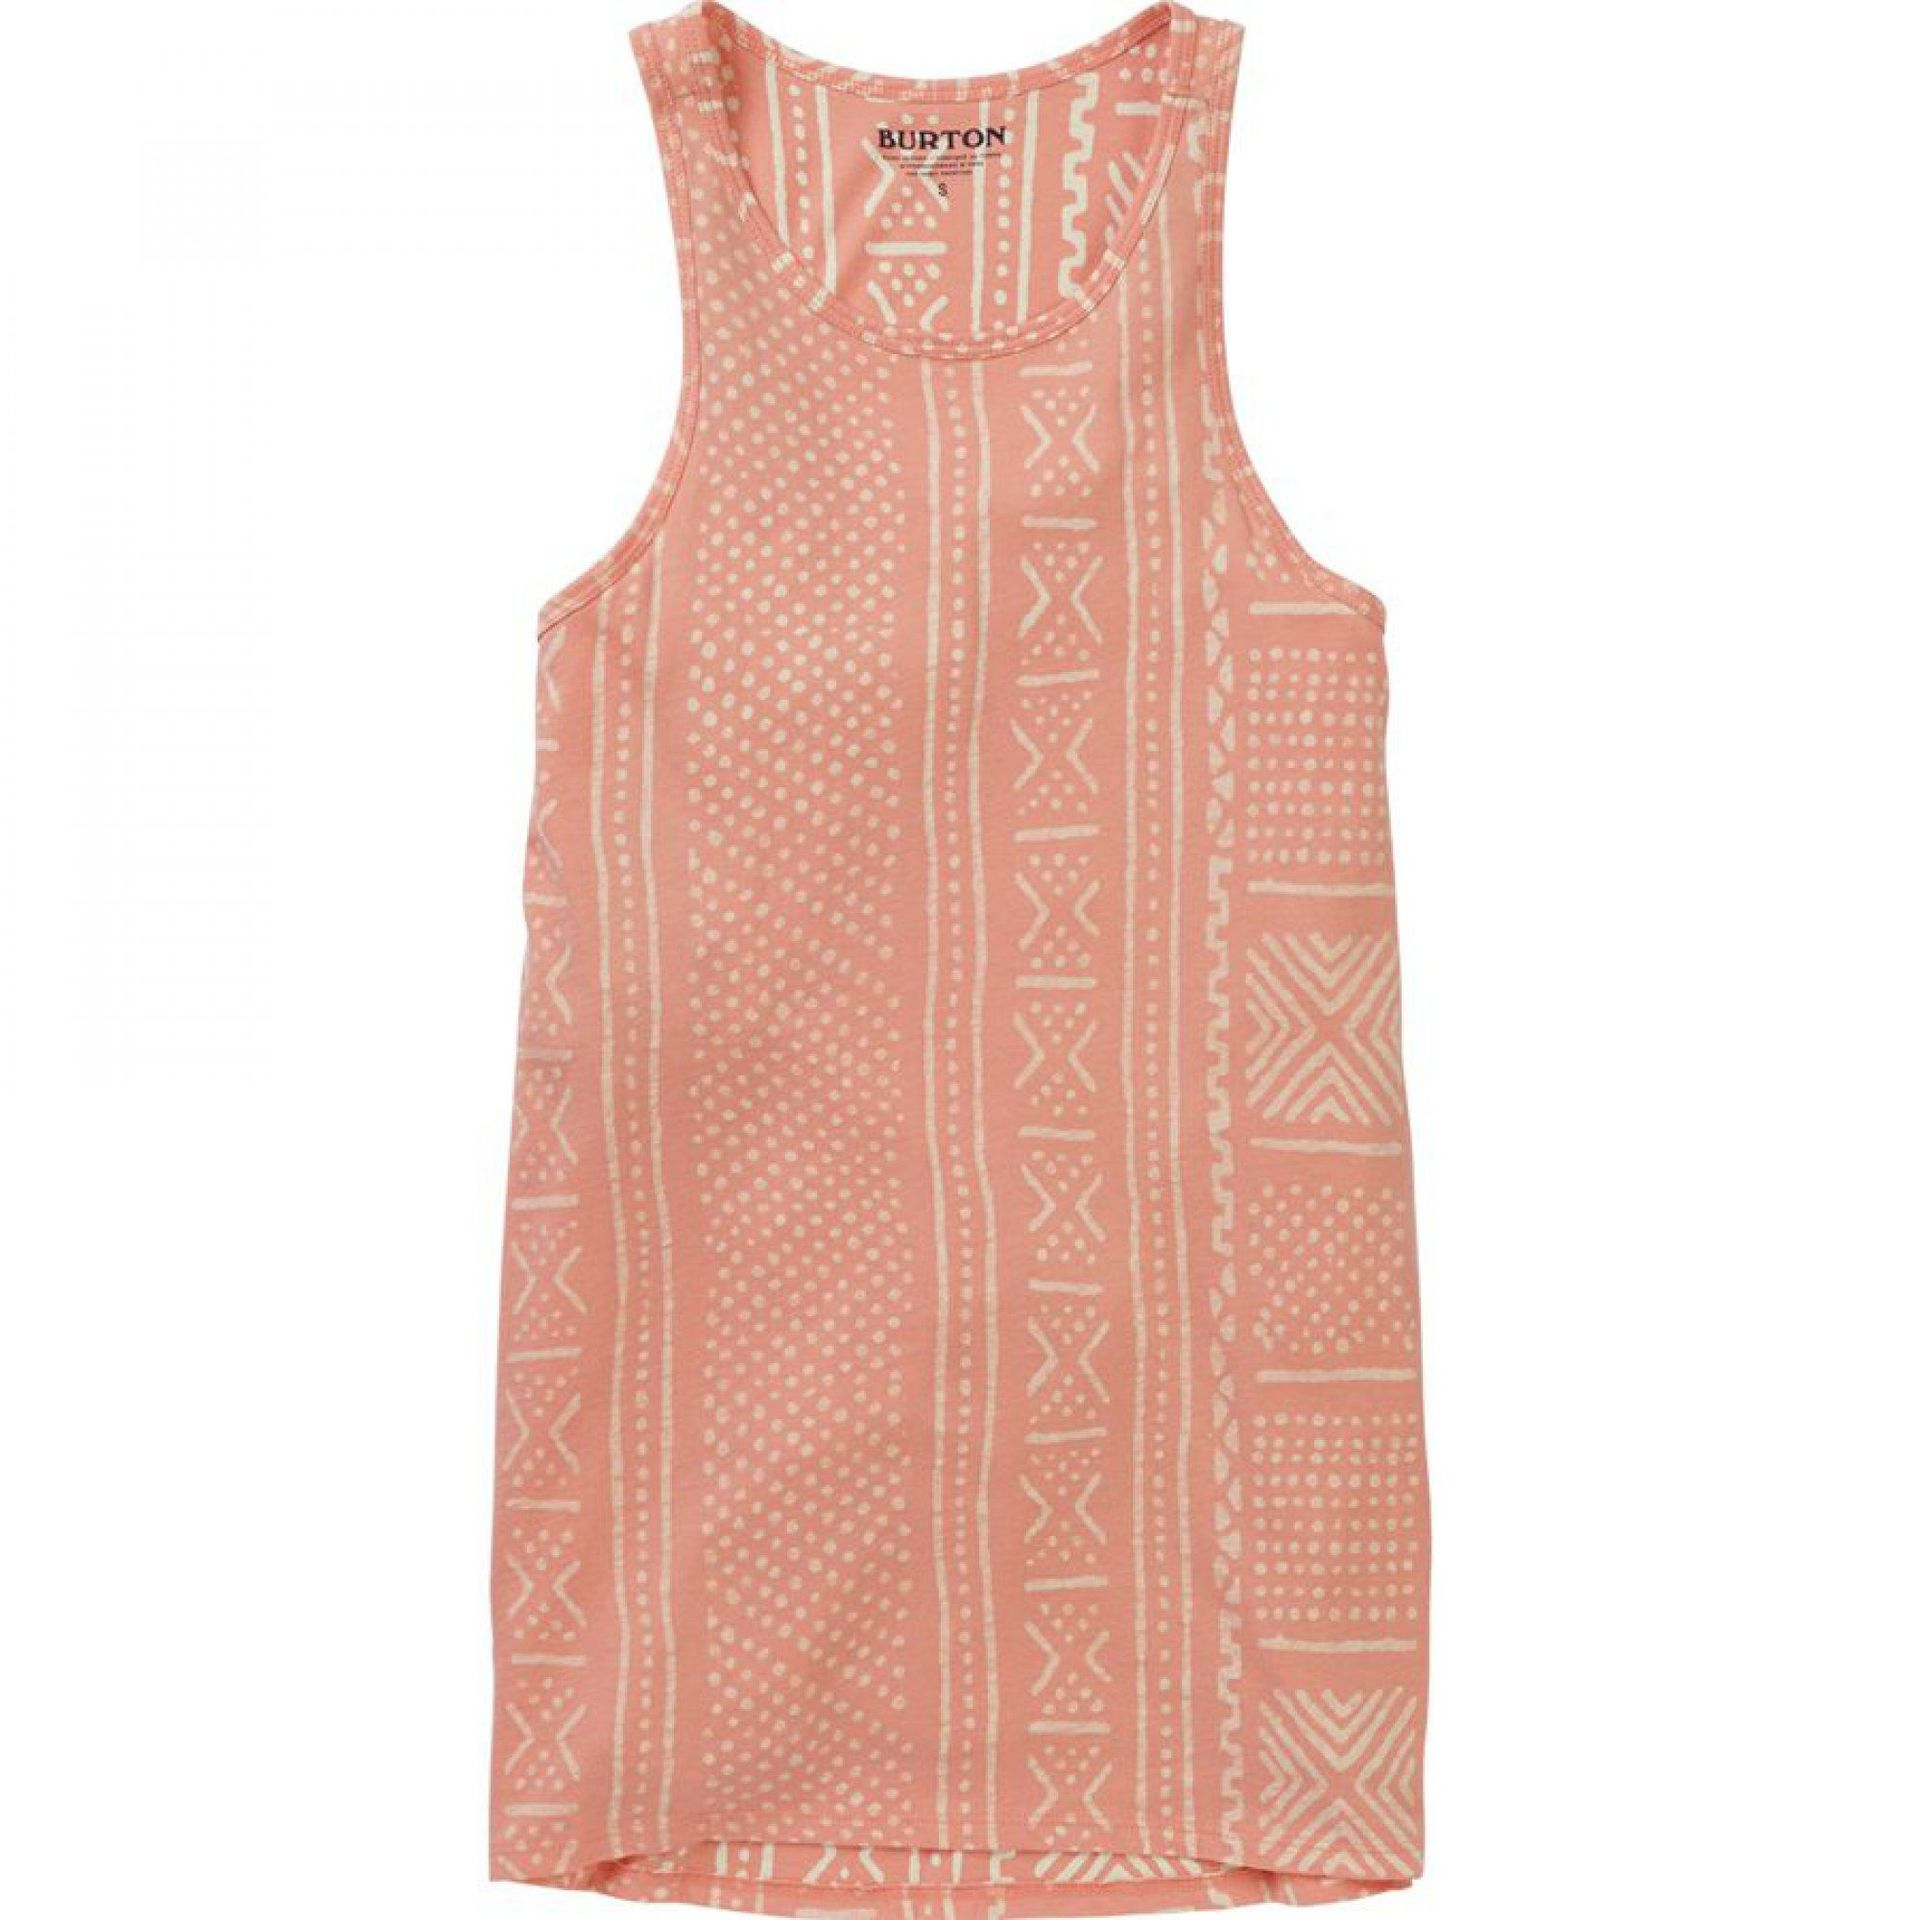 KOSZULKA BURTON CARTA TANK TOP ROSE QUARTZ BAMBARA